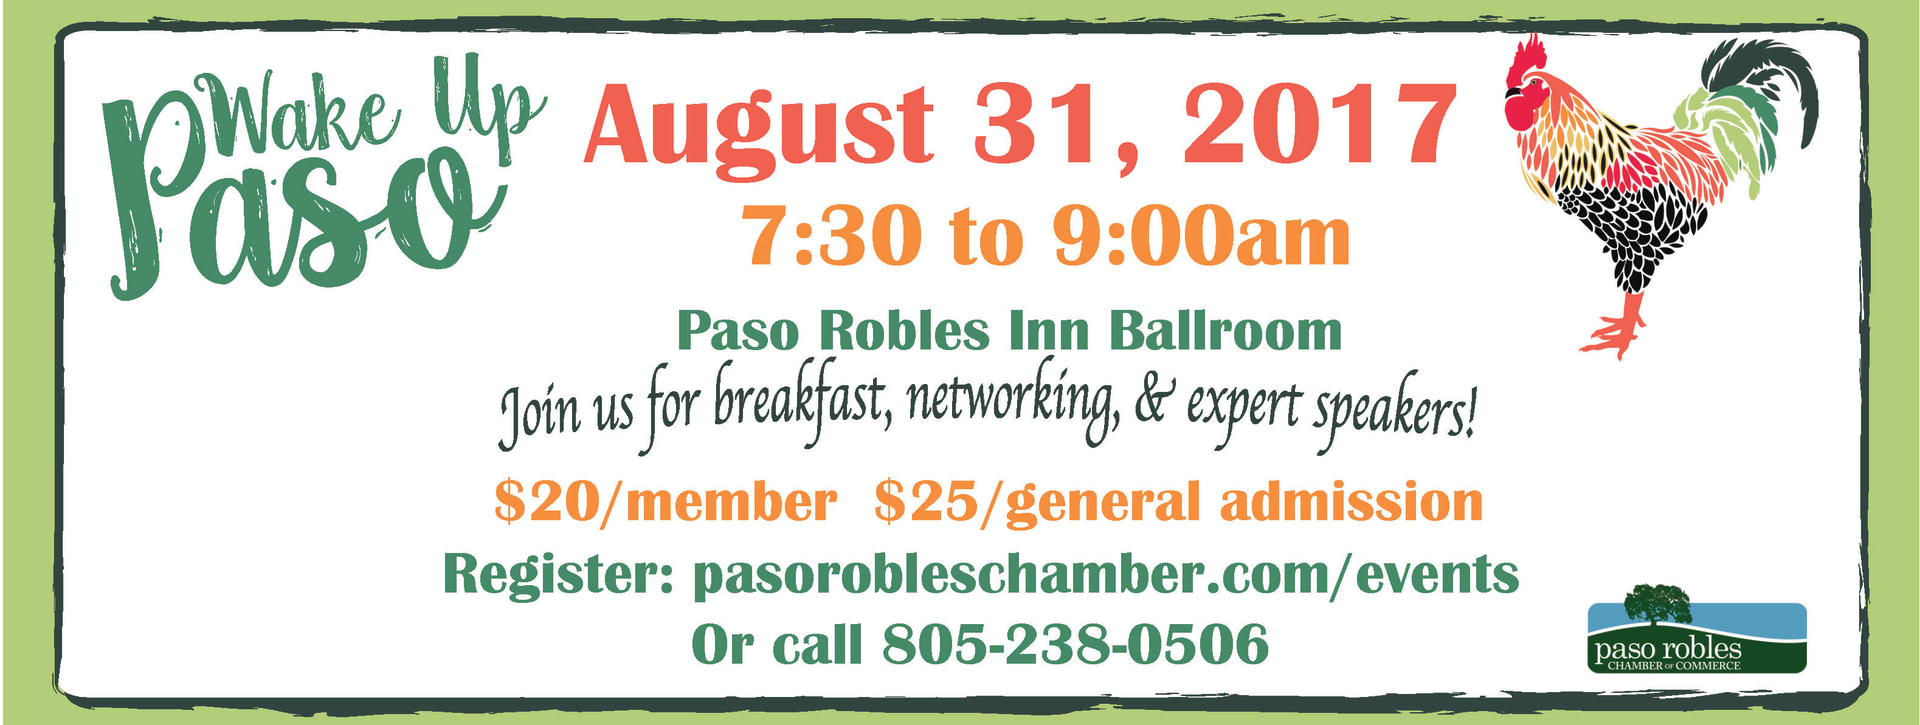 Wake-Up-Paso-Flyer-Aug-Active-Banner-8.30.17(1)-w1920.jpg